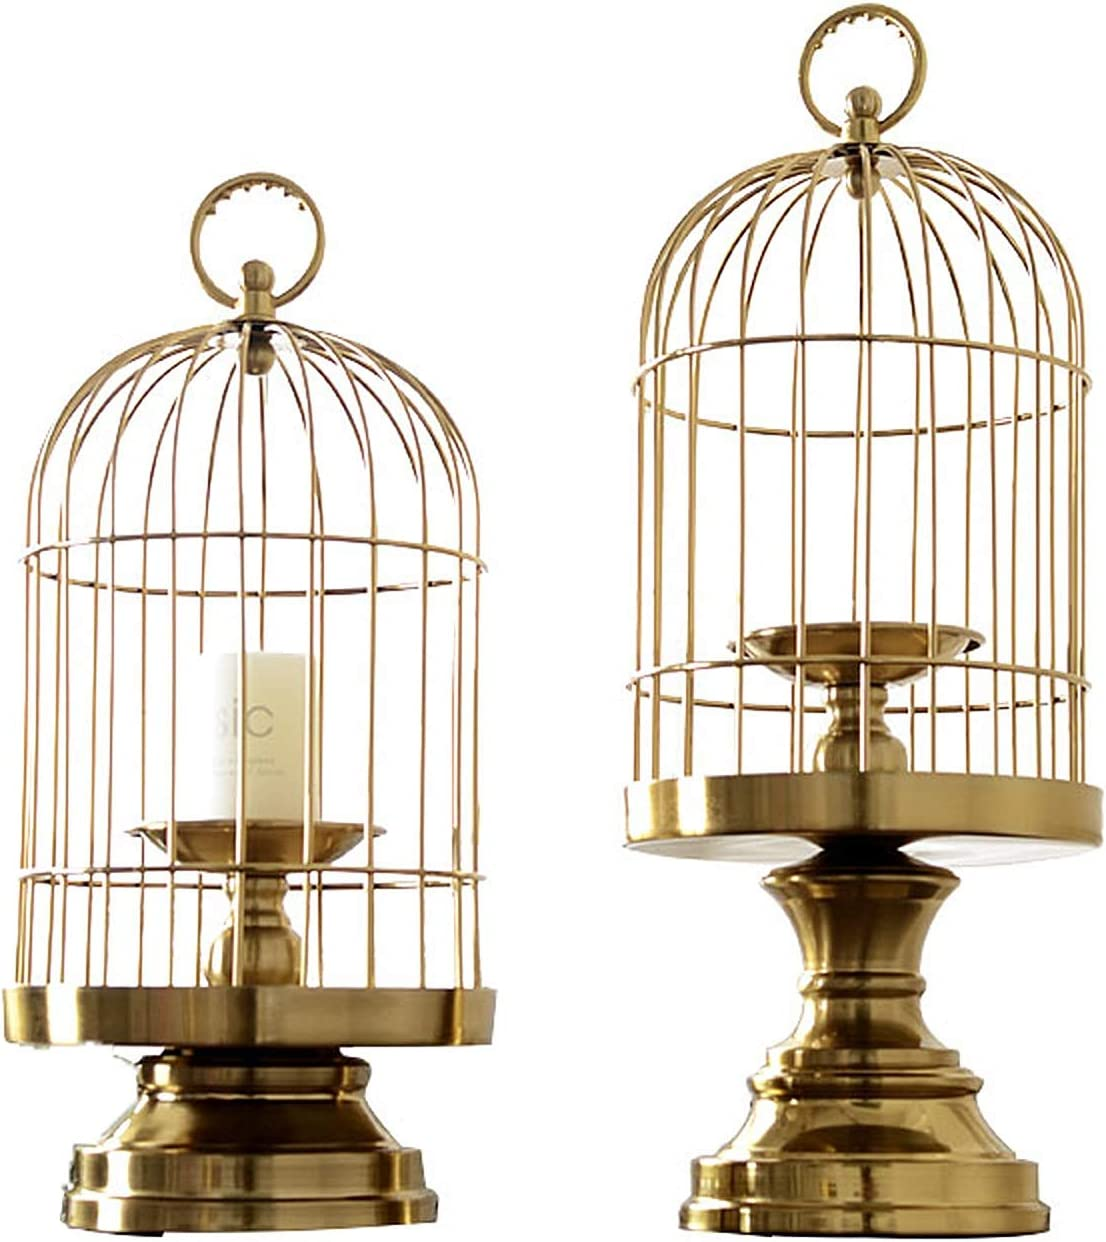 DUOWEI Large special price !! Decorative Bird Cage Candle Holder Vintage Candlestick Ho Wholesale